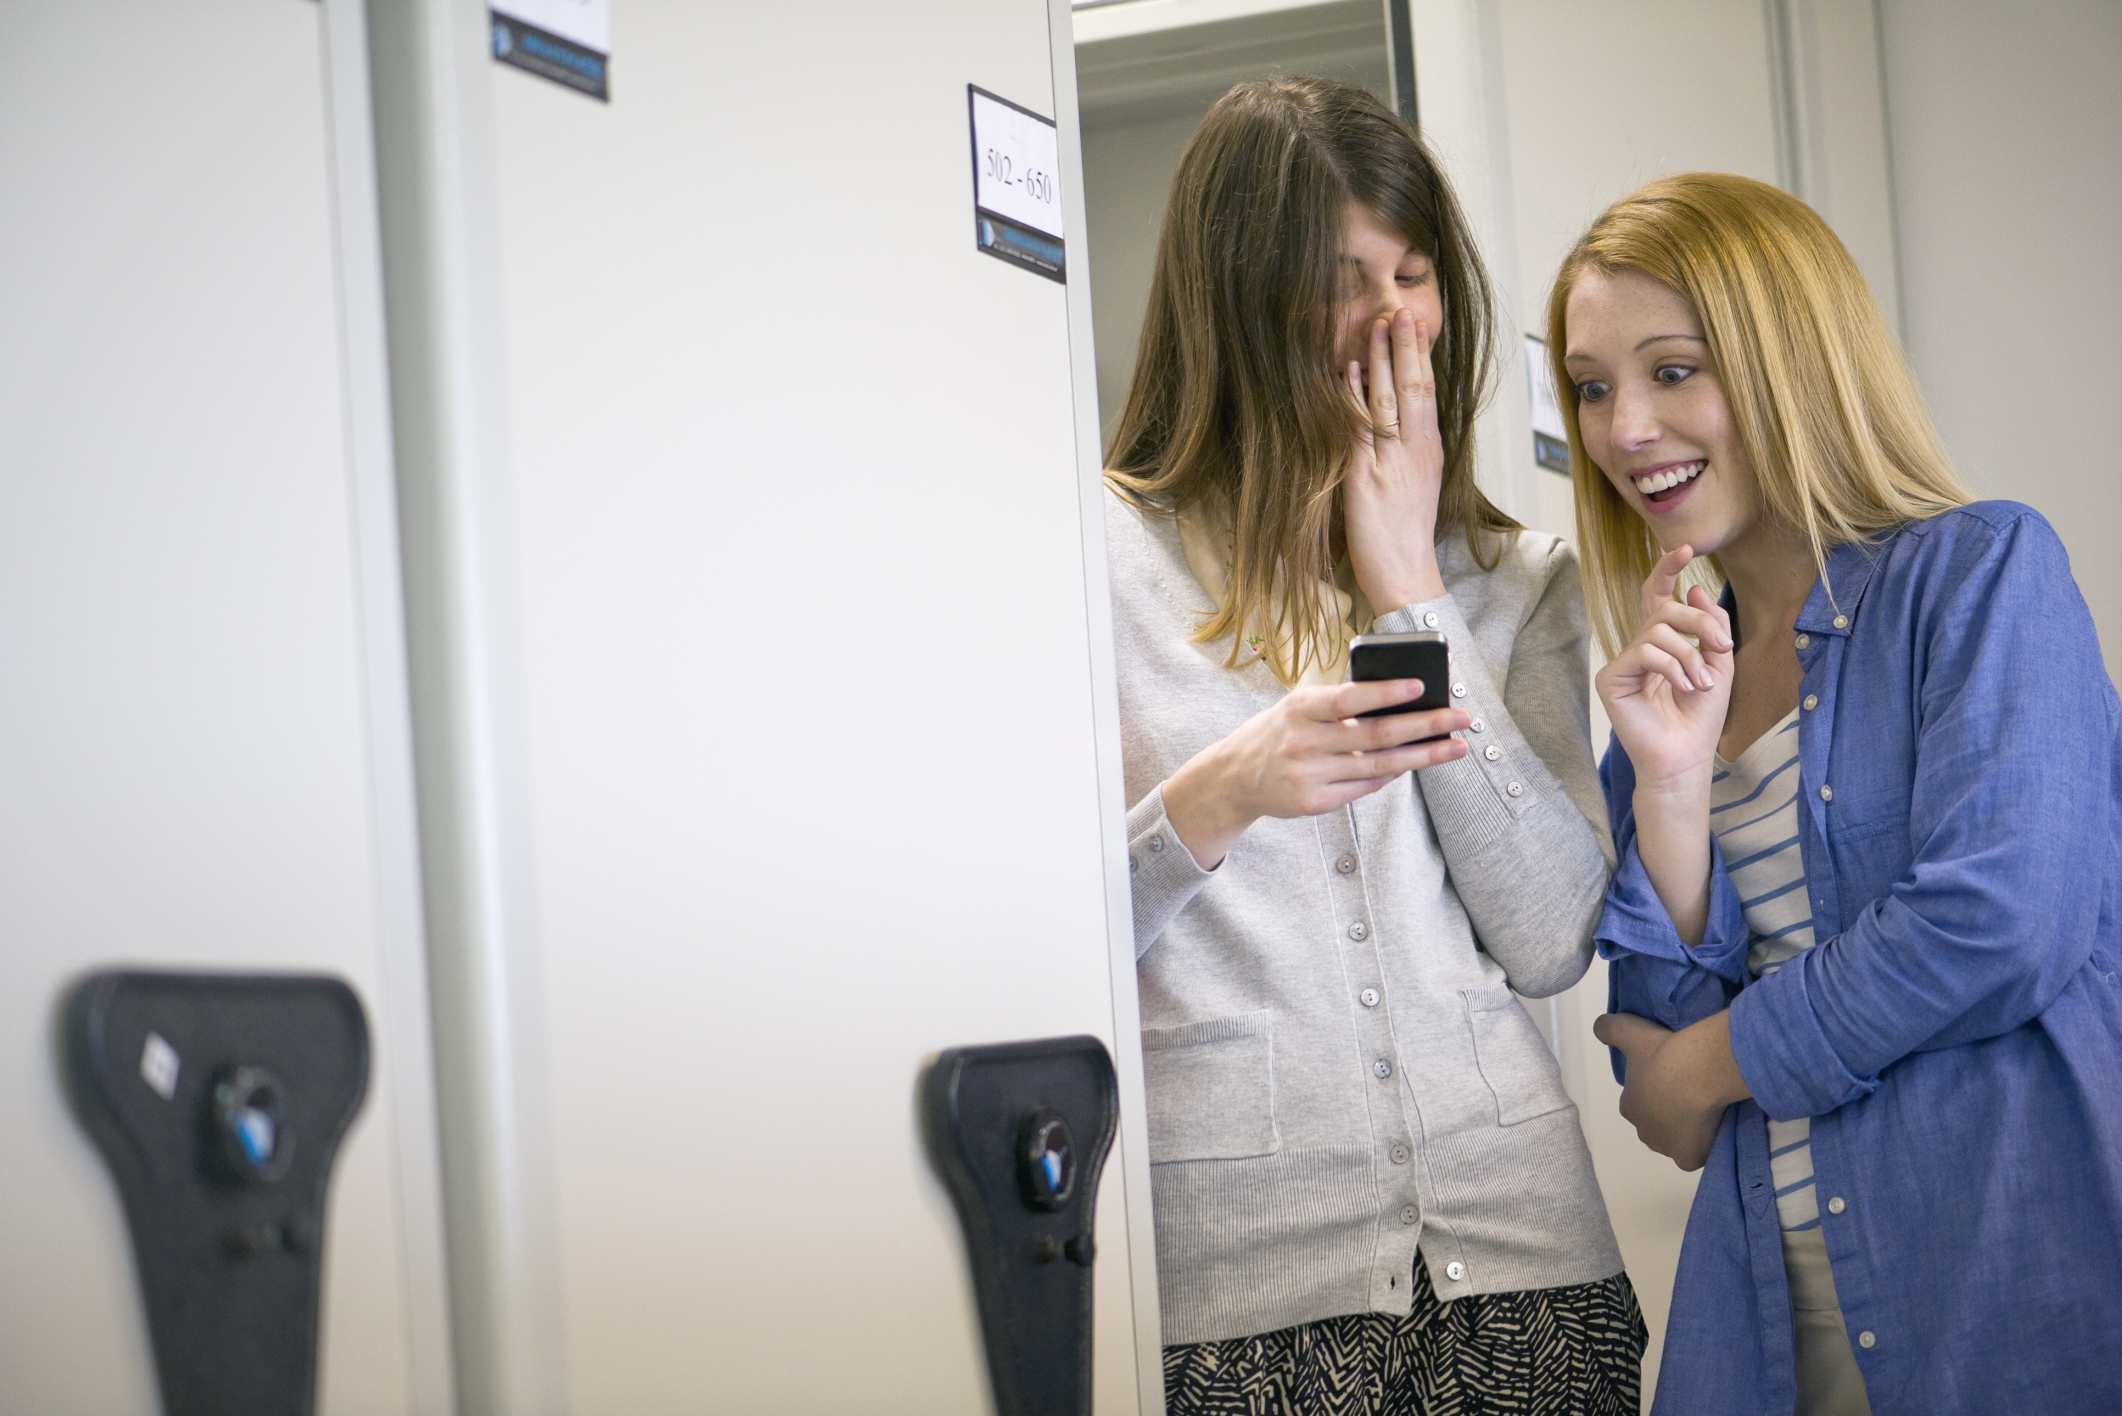 two women looking at phone and laughing